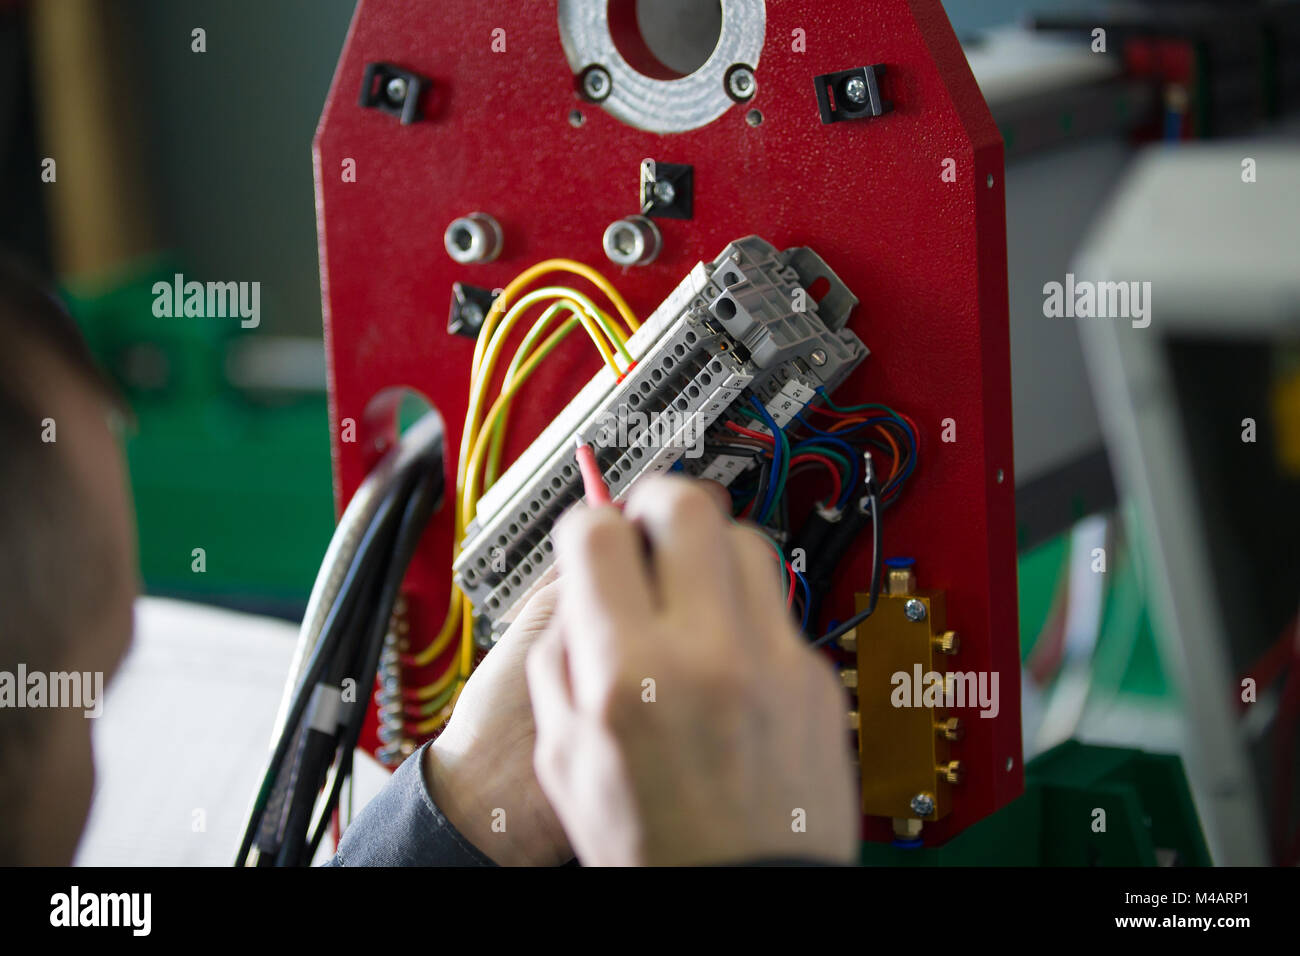 work of electrician engineer switching and testing equipment with rh alamy com